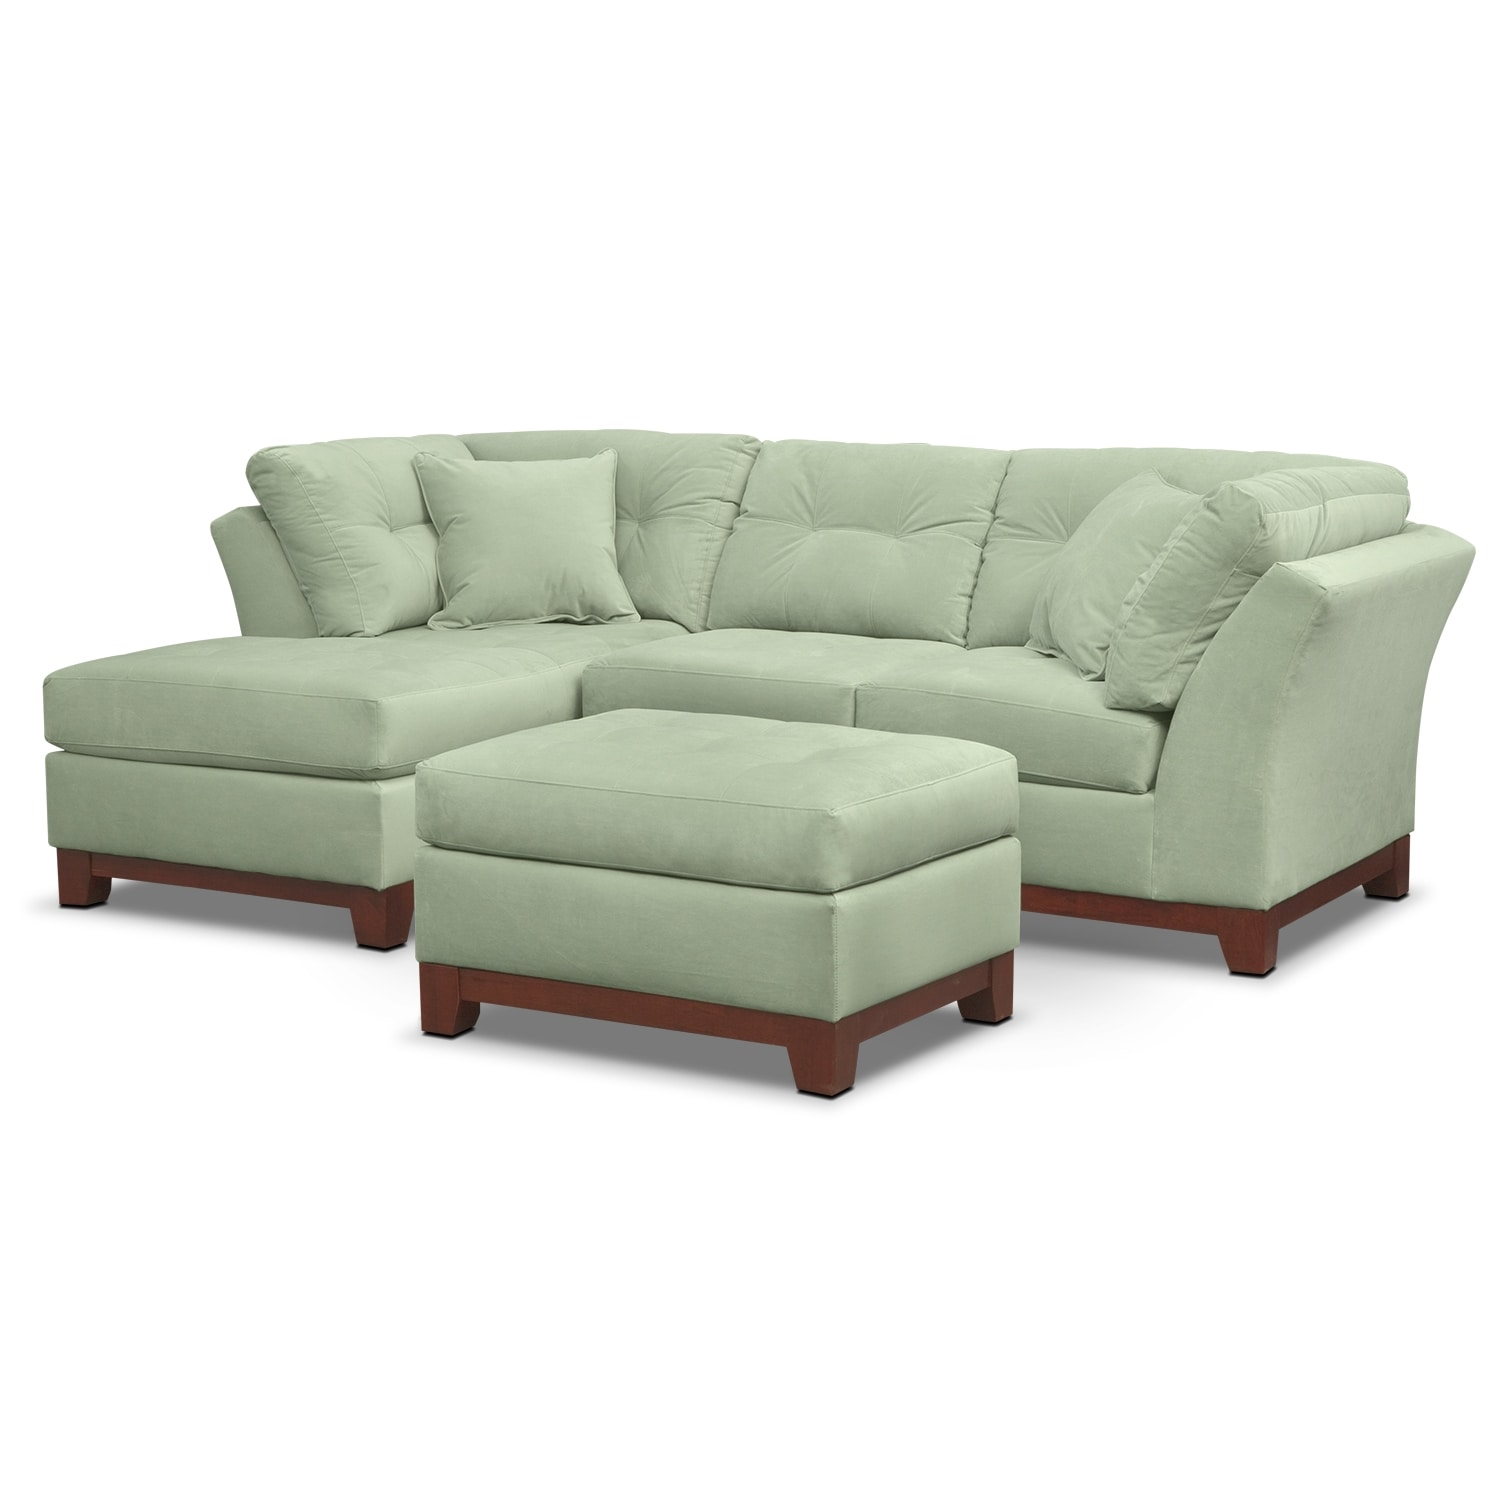 Living Room Furniture - Solace 2-Piece Sectional with Left-Facing Chaise and Ottoman Set - Spa